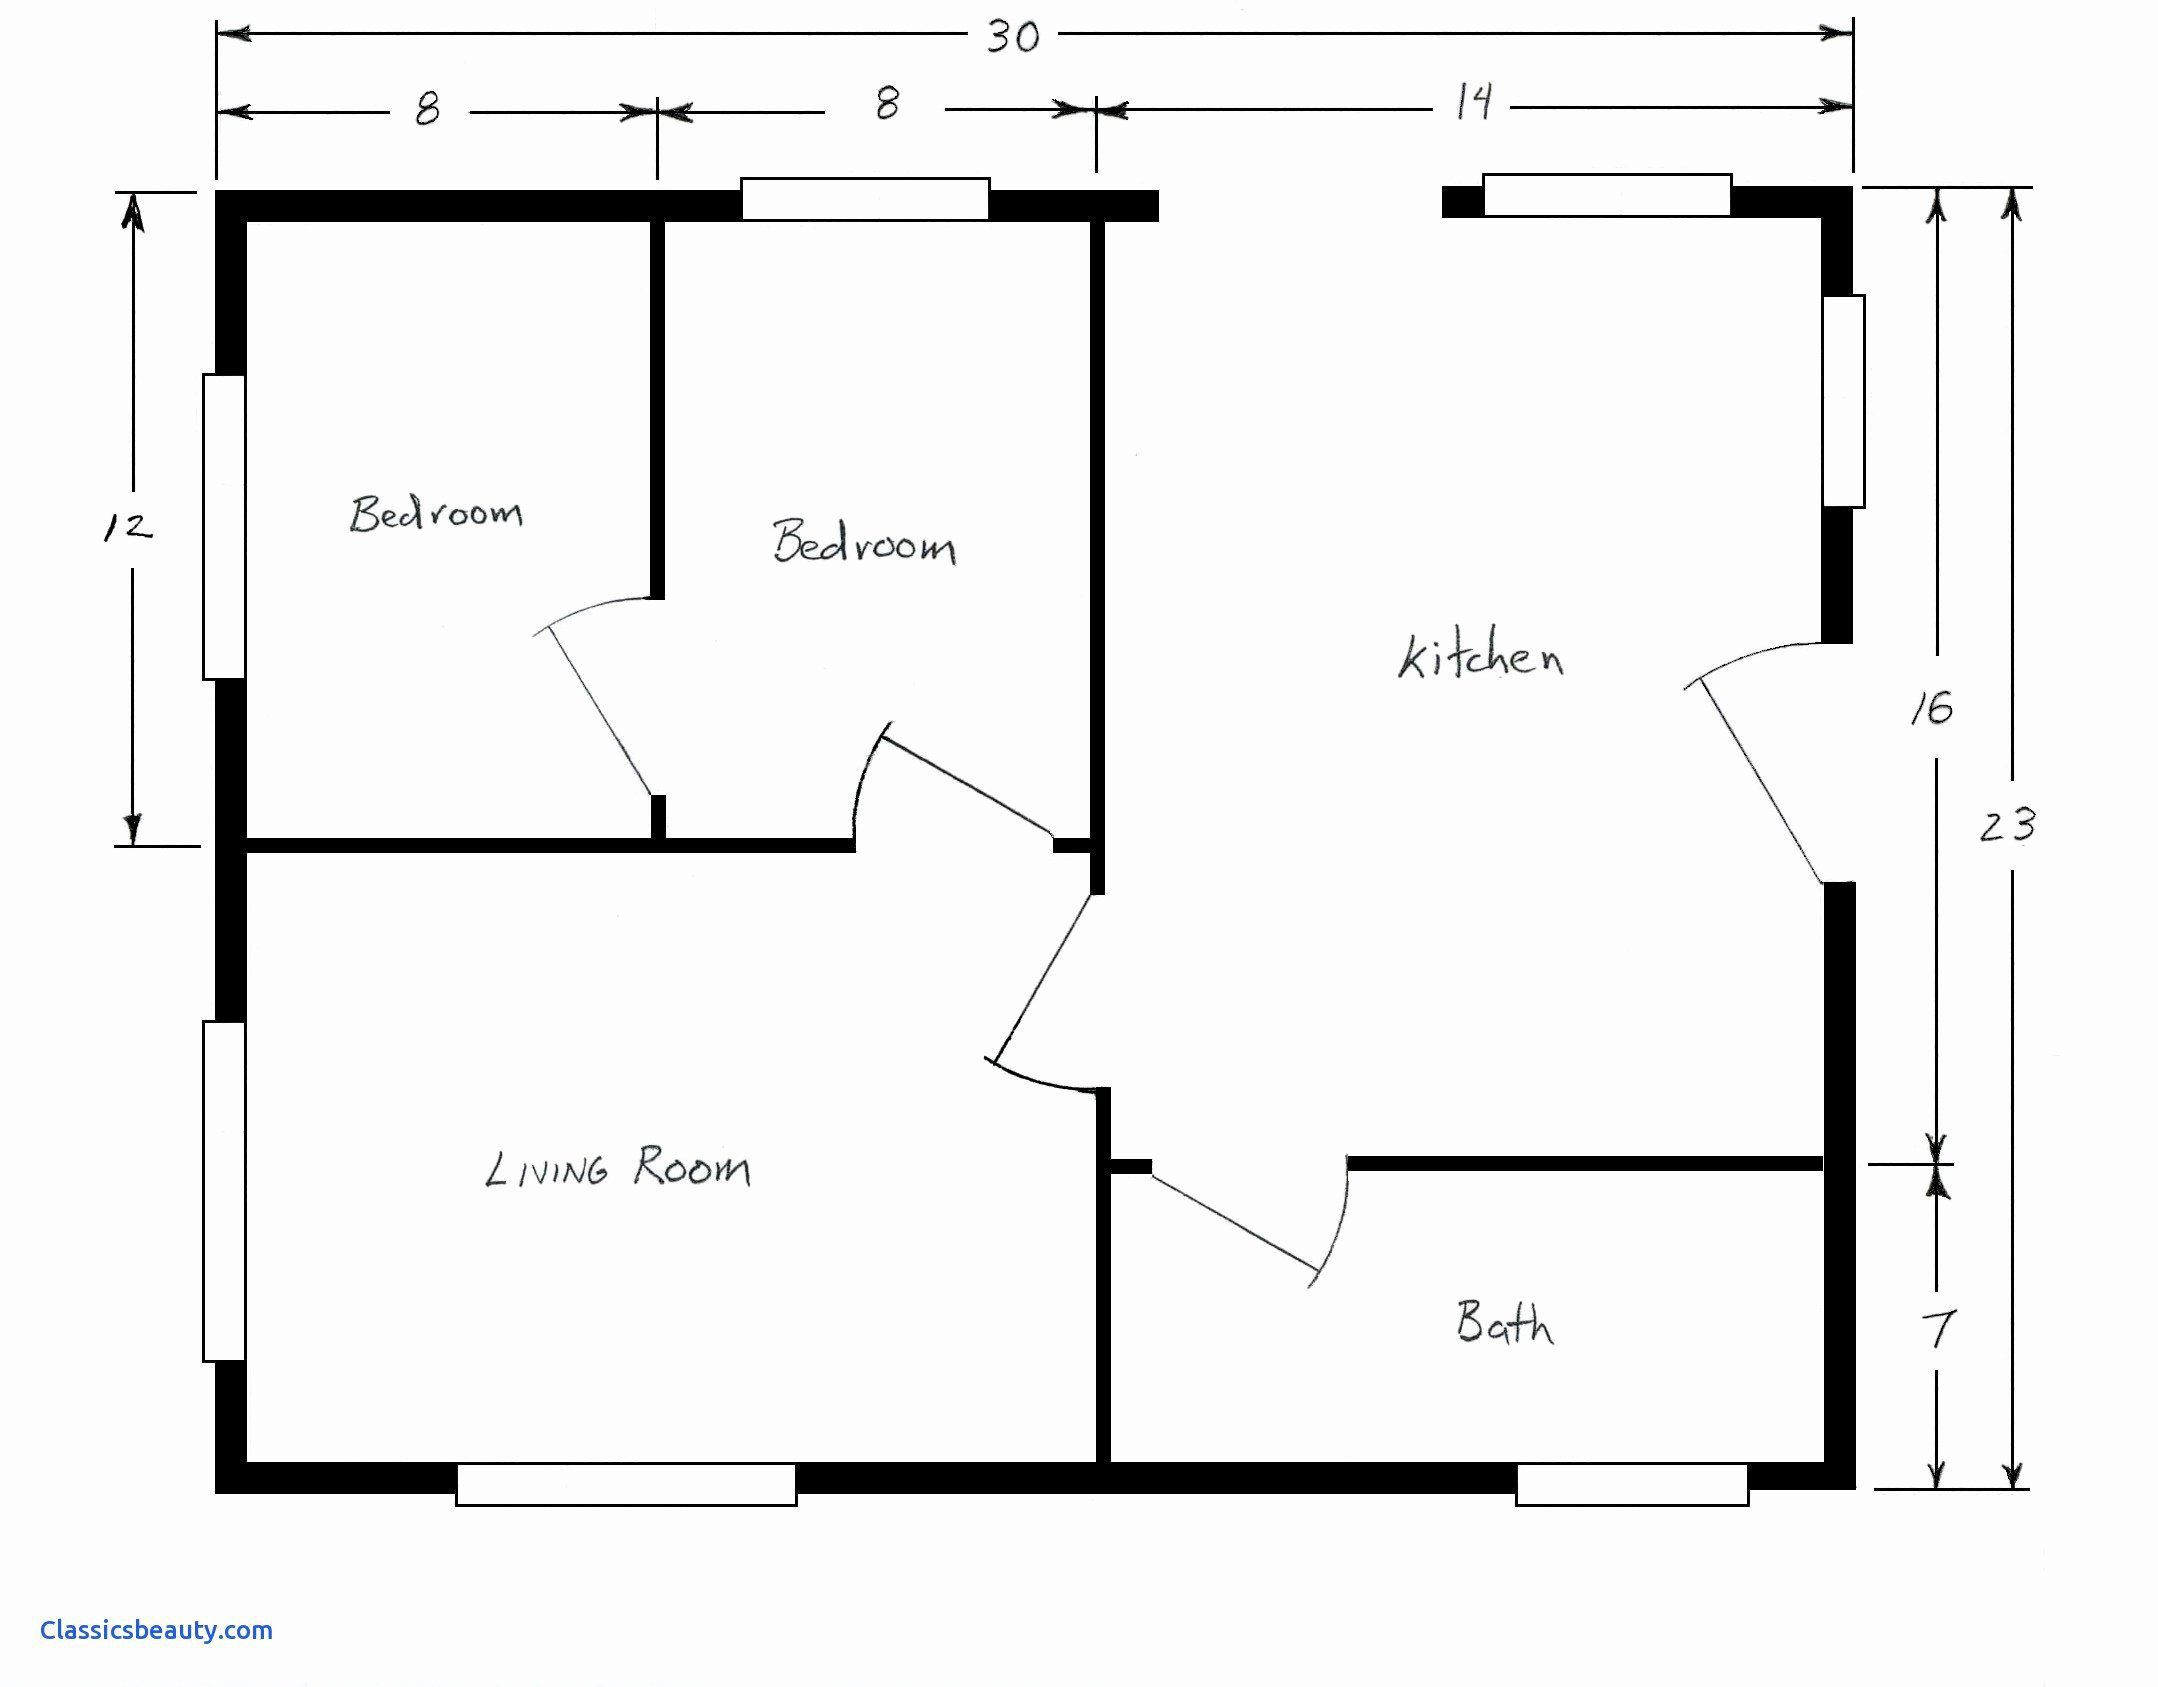 009 Stupendou Free Floor Plan Template High Resolution  Excel Home House SampleFull